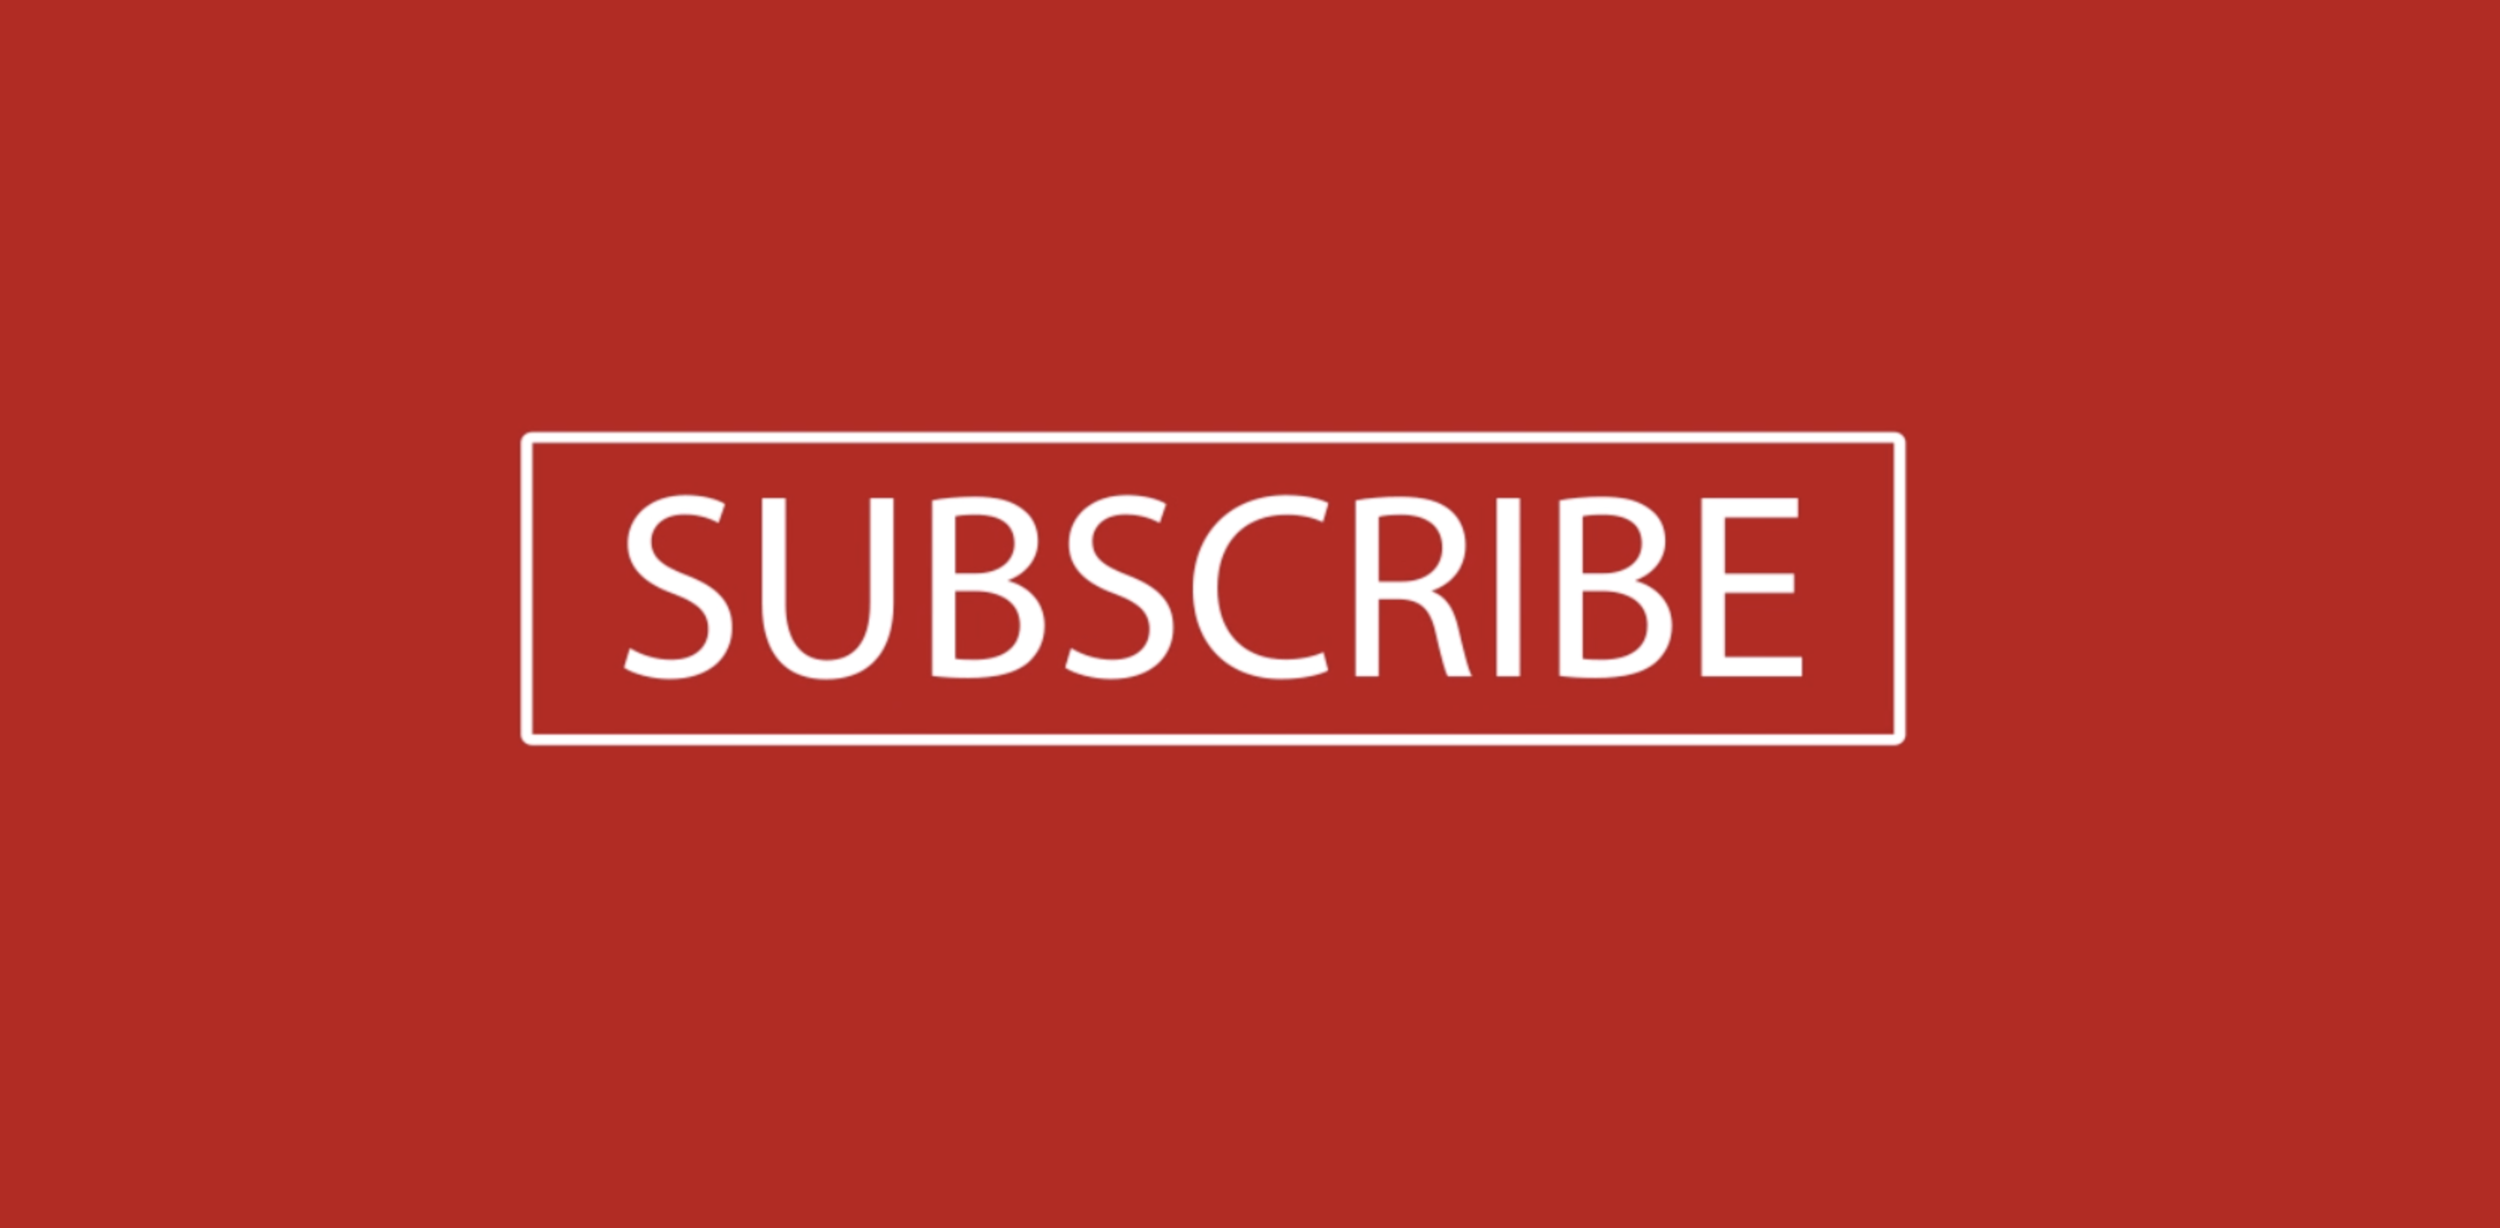 We post videos weekly - Subscribe to our channel for more videos